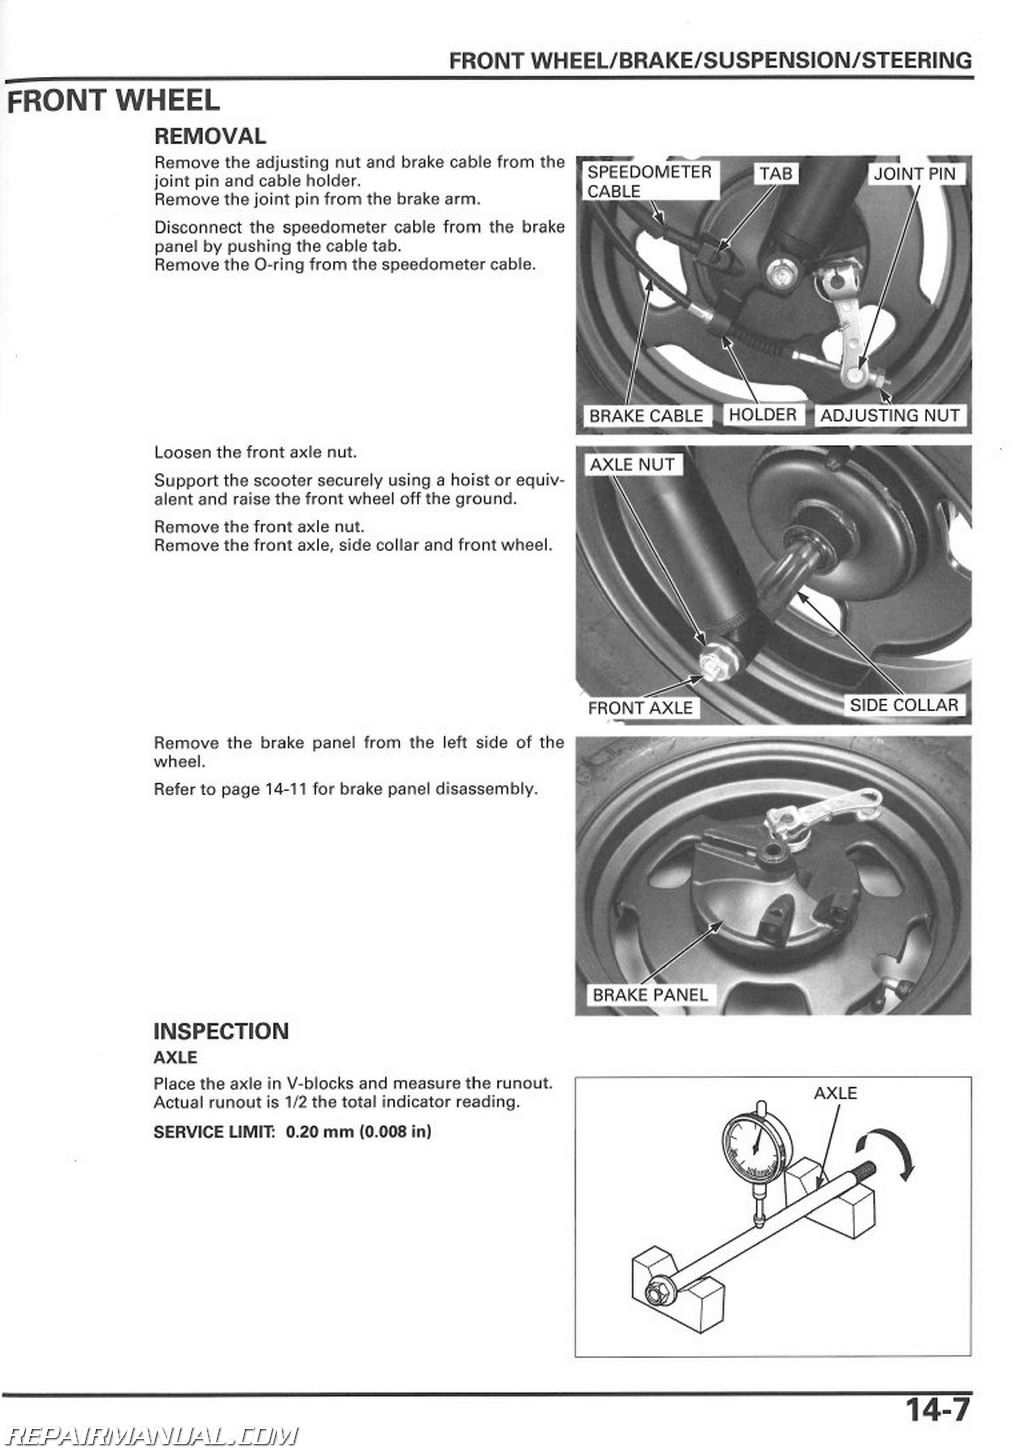 bdx honda ruckus wiring diagram 2003-2015 honda nps50 ruckus scooter service manual by ... honda ruckus wiring diagram pdf